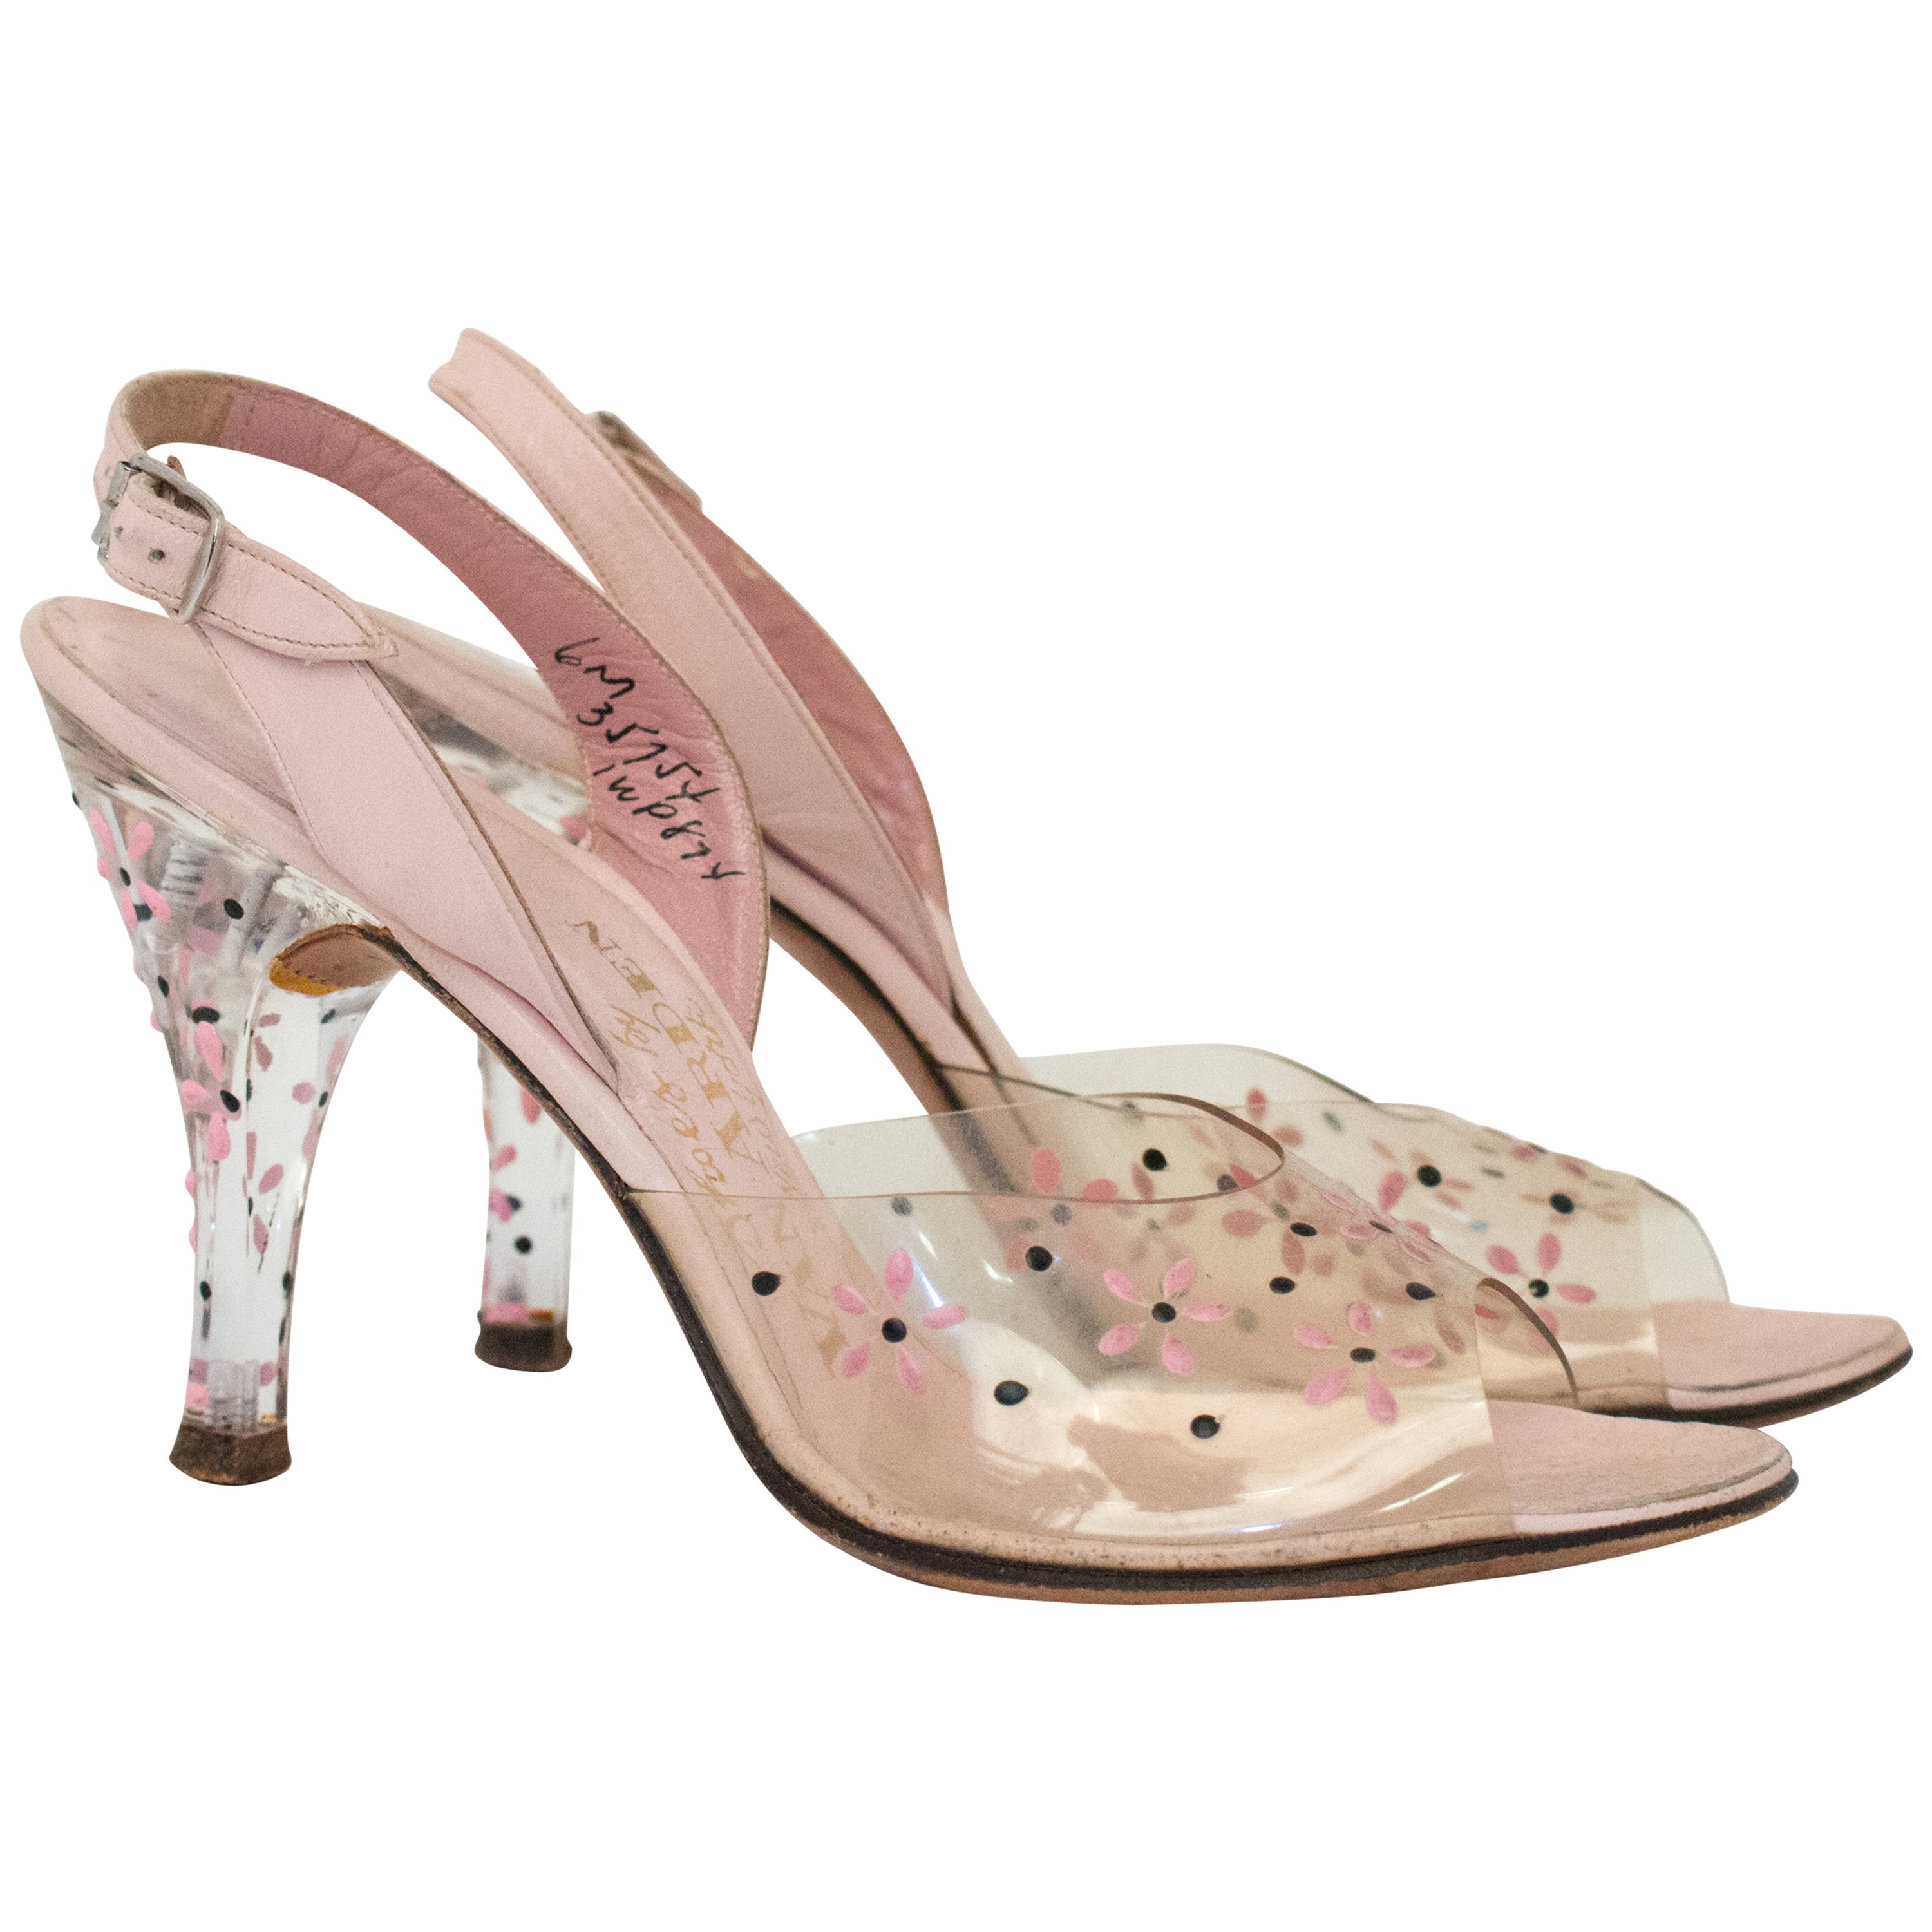 b3293347b72 50s Pink Lucite Heels with Floral Painted Embellishment